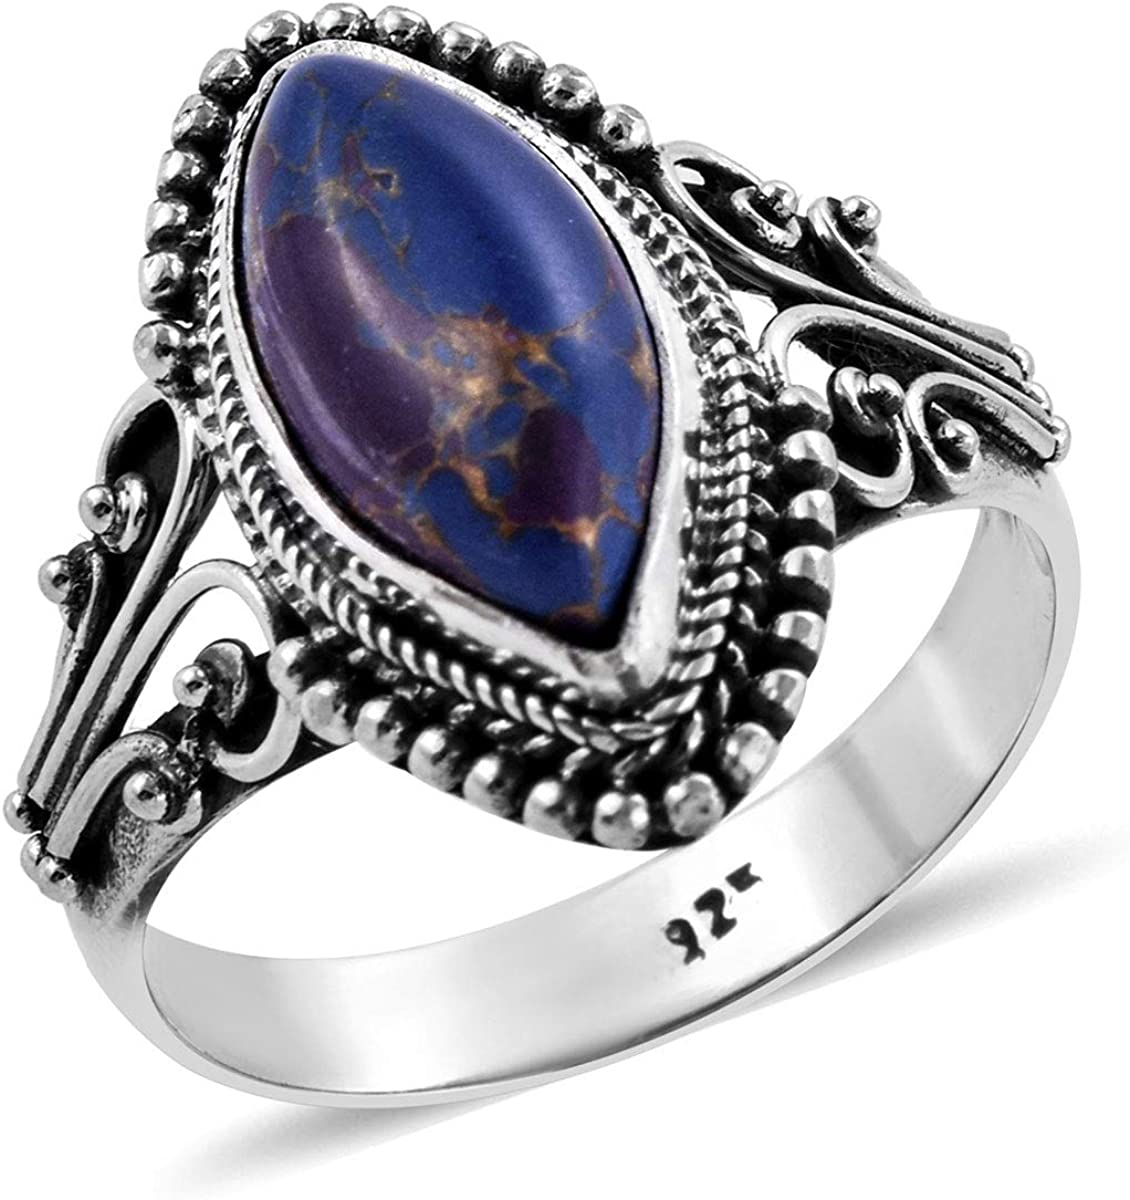 USA Seller Moon & Star Ring Sterling Silver 925 Jewelry Selectable Blue Opal